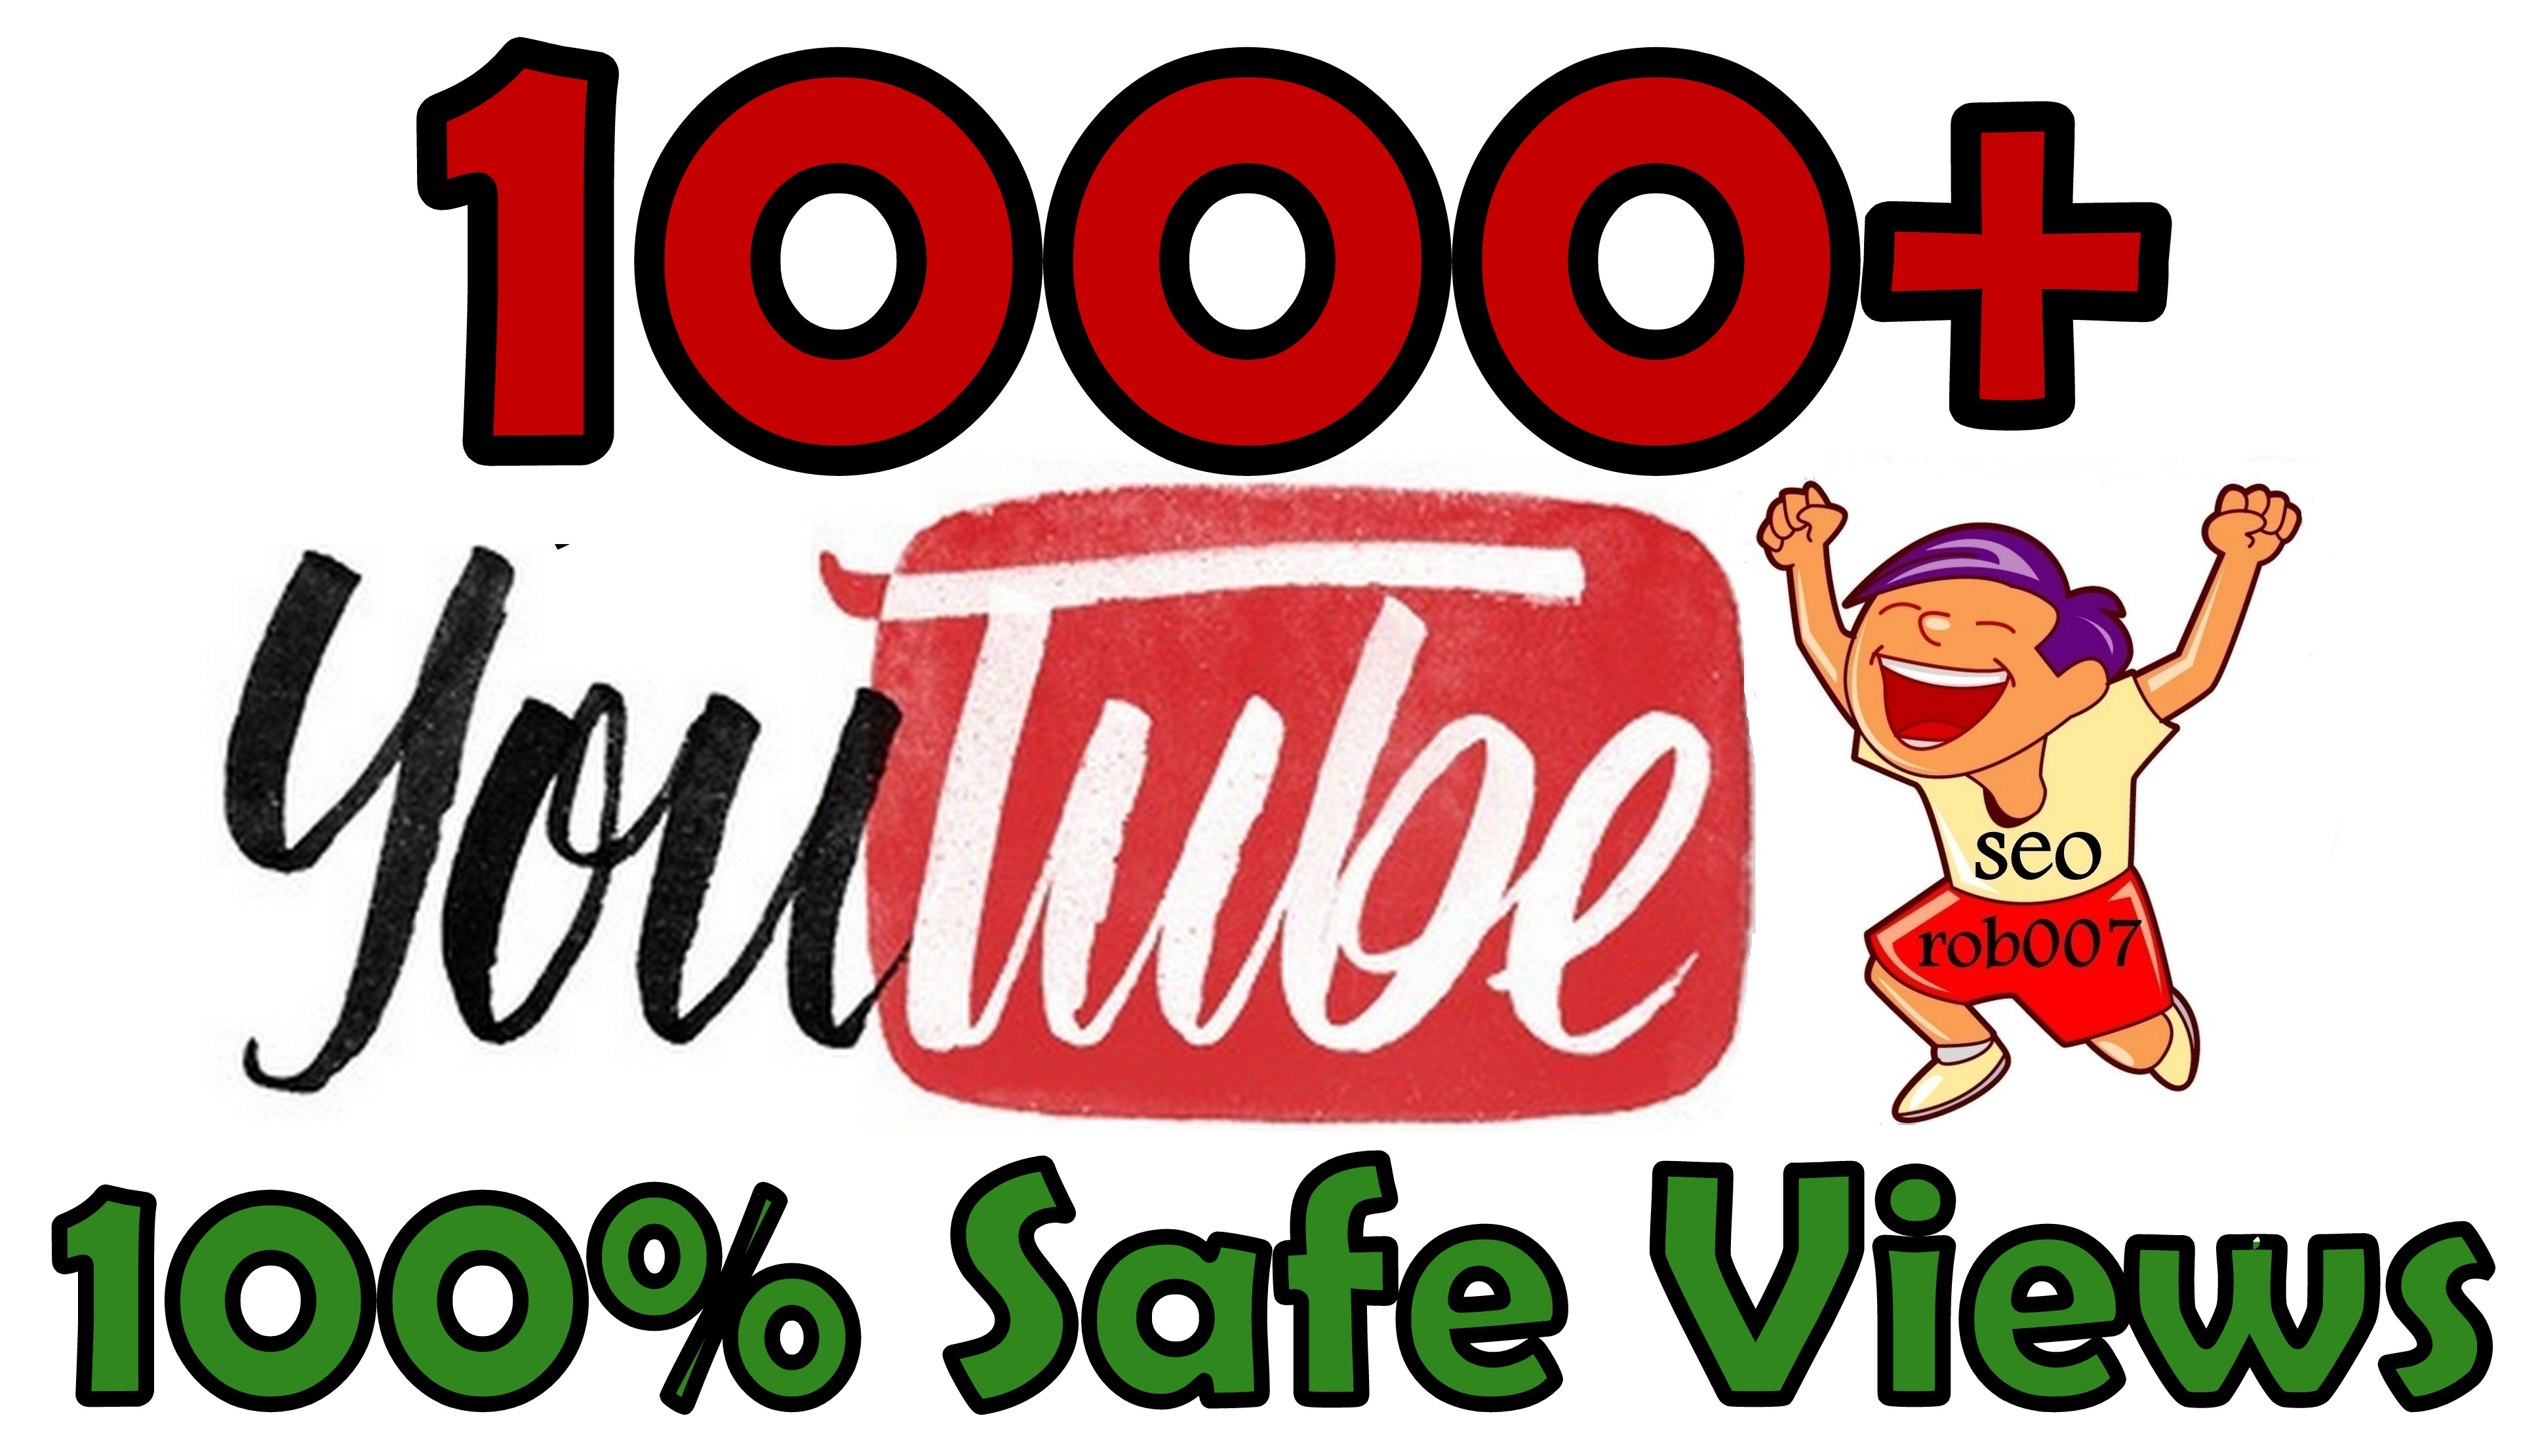 Unlimited video views Promotion Non Drop Guarantee Lifetime in 24-48 Hours